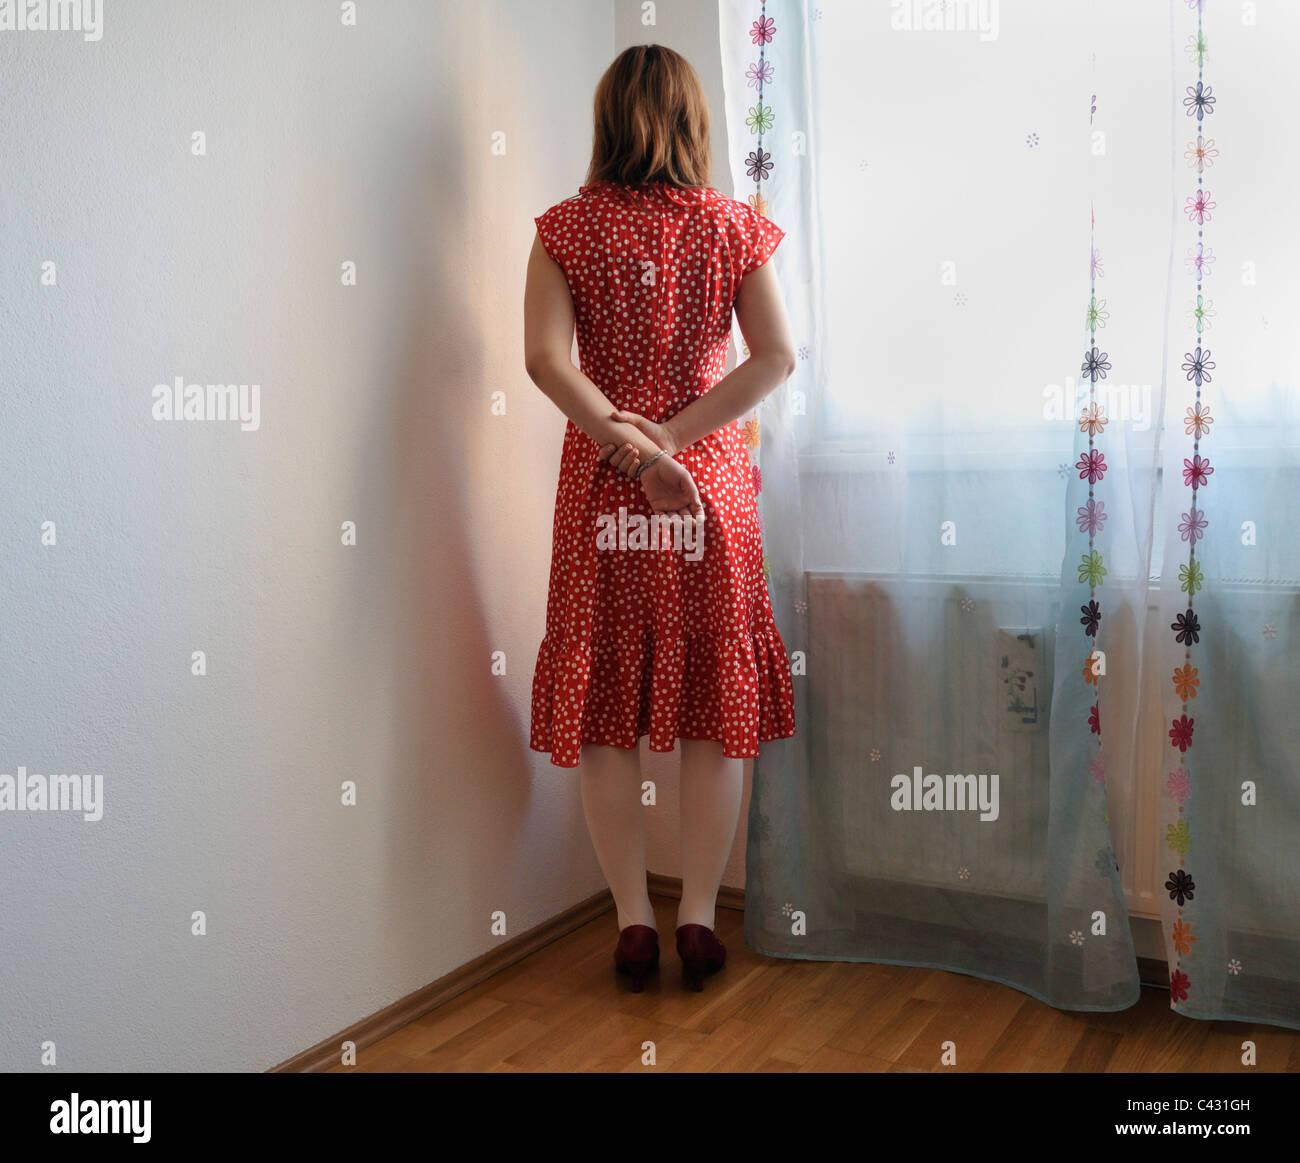 Lonely young woman - Stock Image